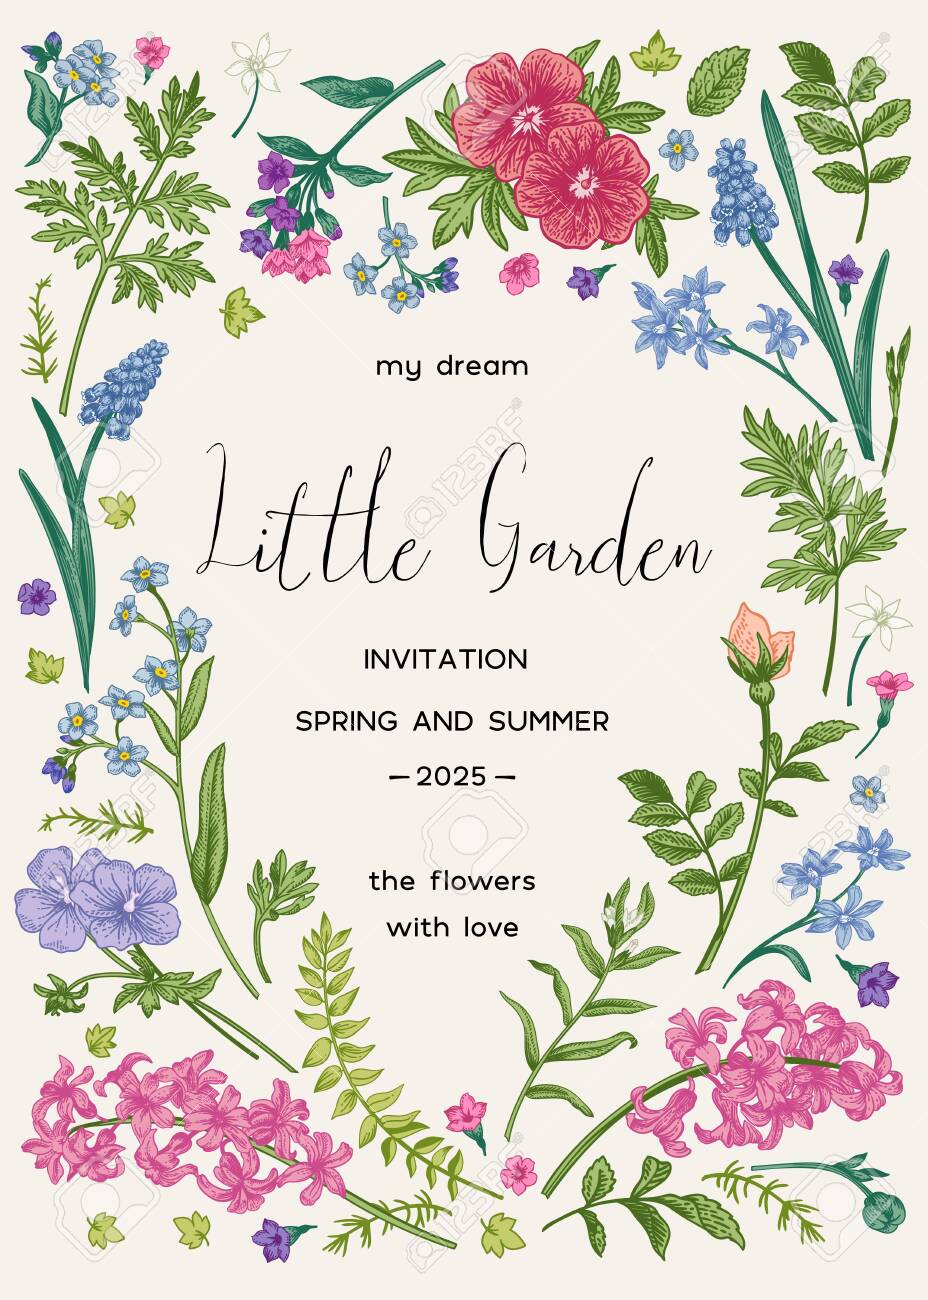 Floral frame with spring and summer garden plants. Little garden. Vector botanical illustration. Vintage style. Invitation card with flowers. Muscari, ferns, wormwood, geranium, hyacinth, rose. - 149007830